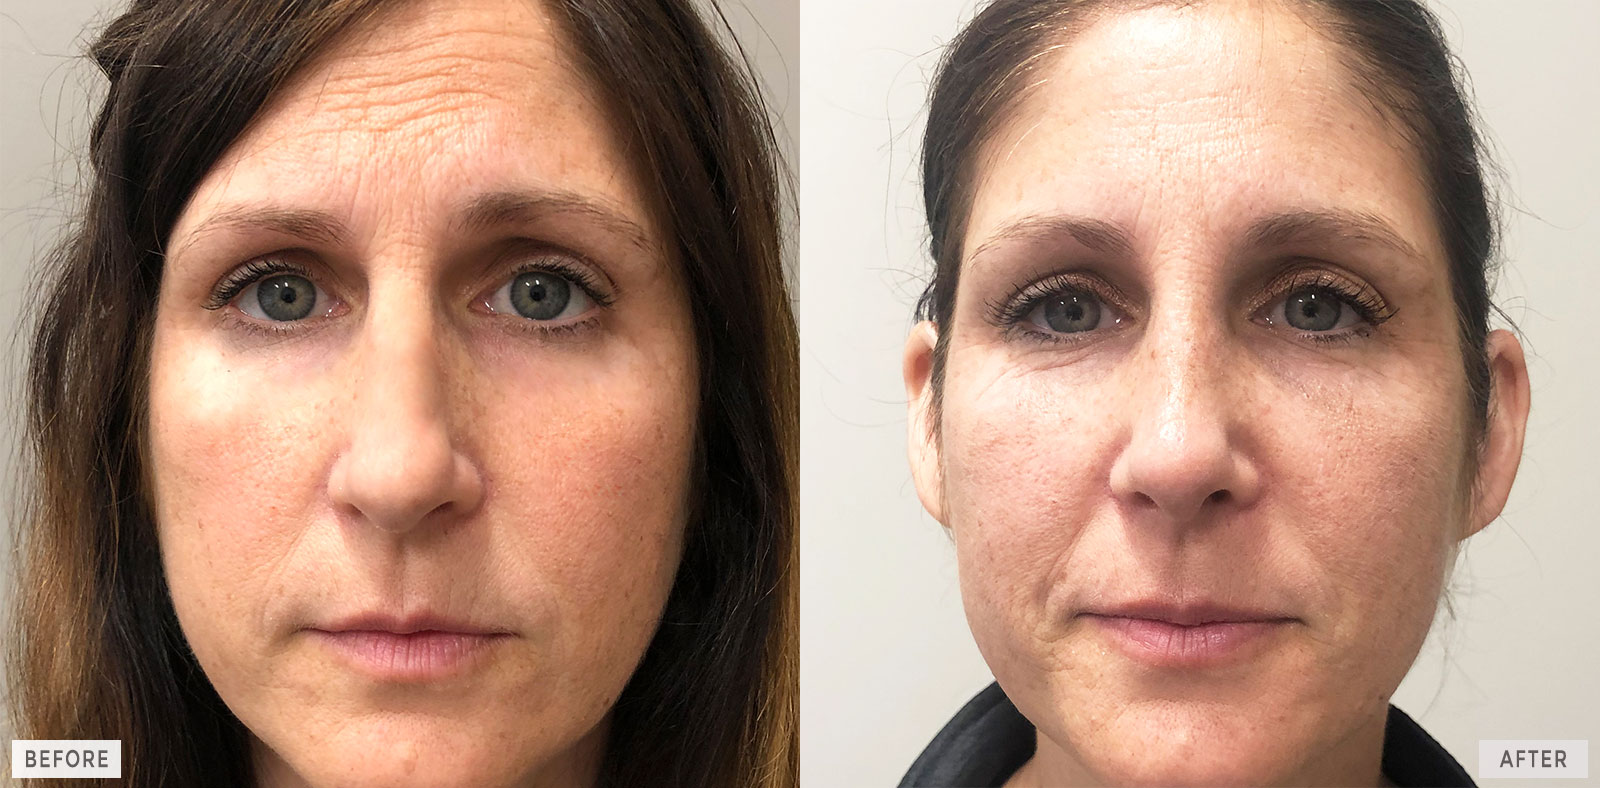 Philadelphia Cosmetic Rhinoplasty Nose Job Before and After Images